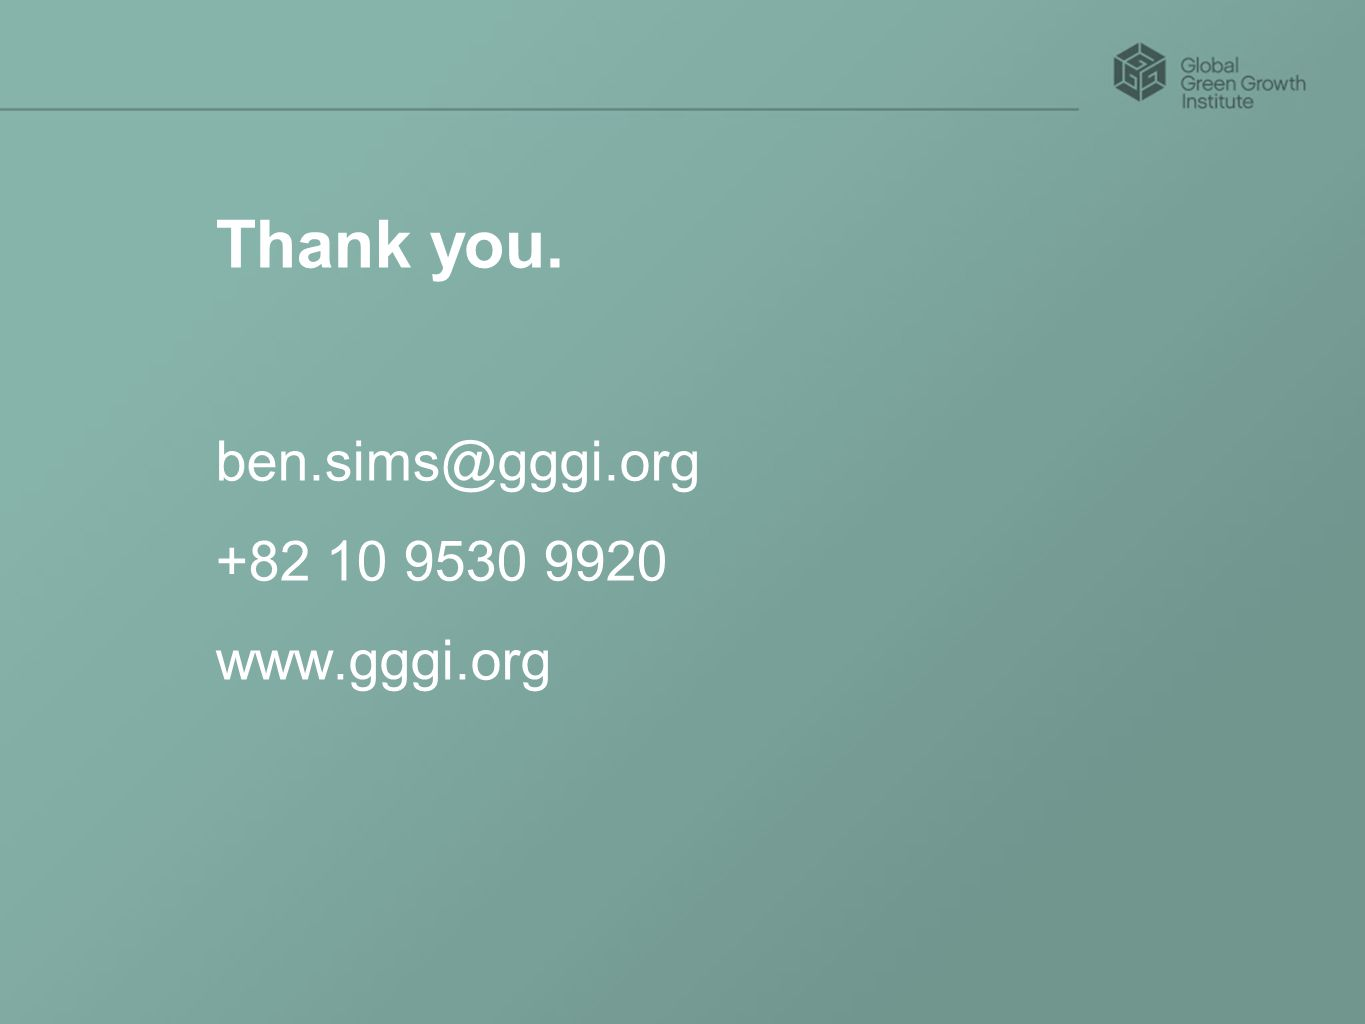 Thank you. ben.sims@gggi.org +82 10 9530 9920 www.gggi.org